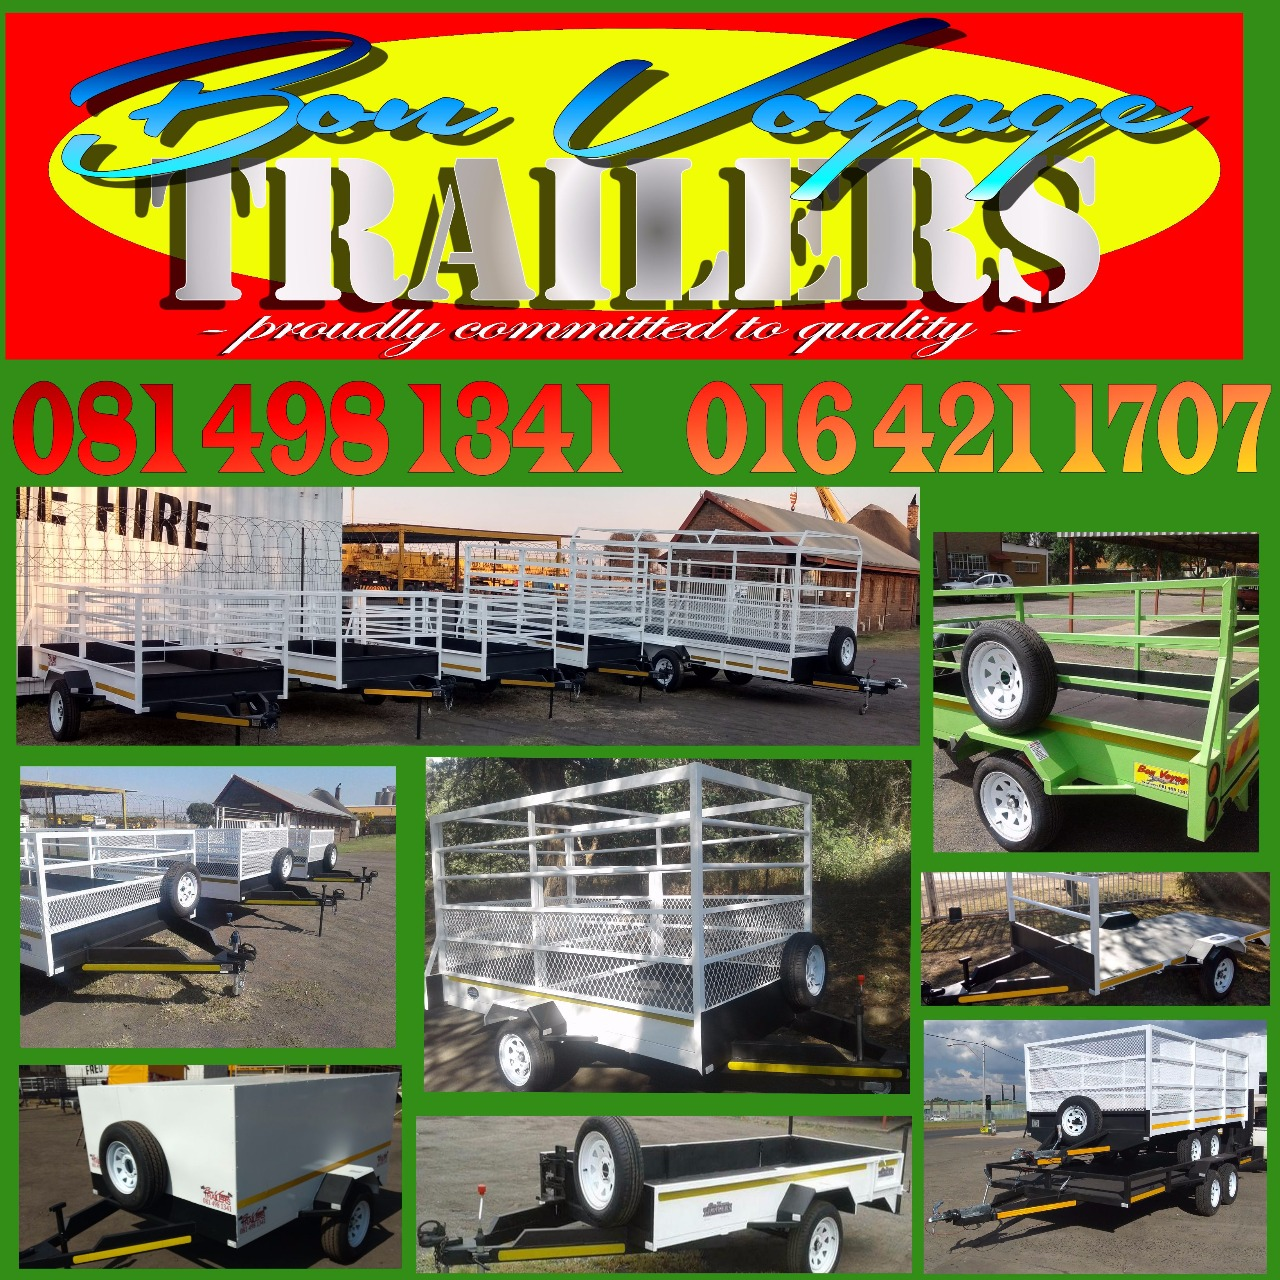 HIGHEST QUALITY MANUFACTURED TRAILERS